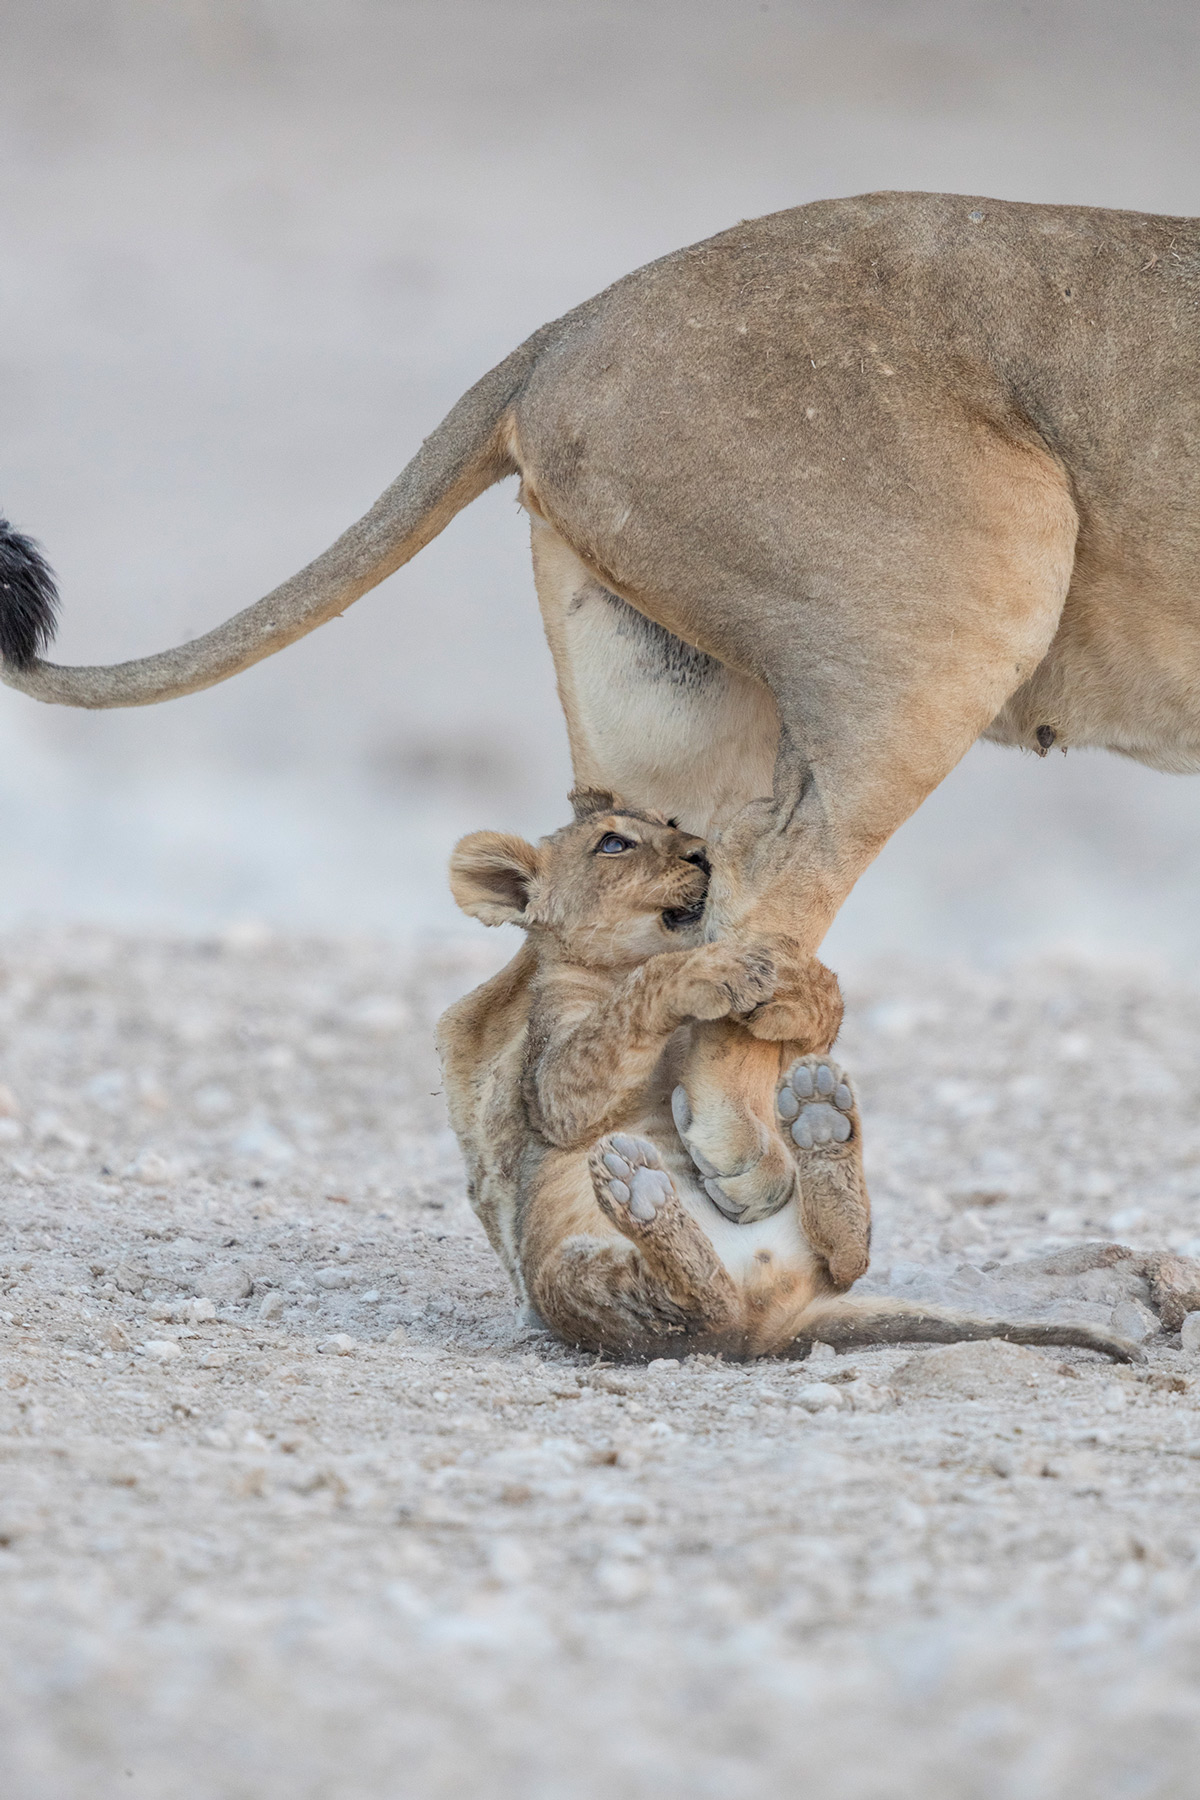 A lion cub grabs his mother's leg as she gets up after resting in Etosha National Park, Namibia © Owen Jason Kandume